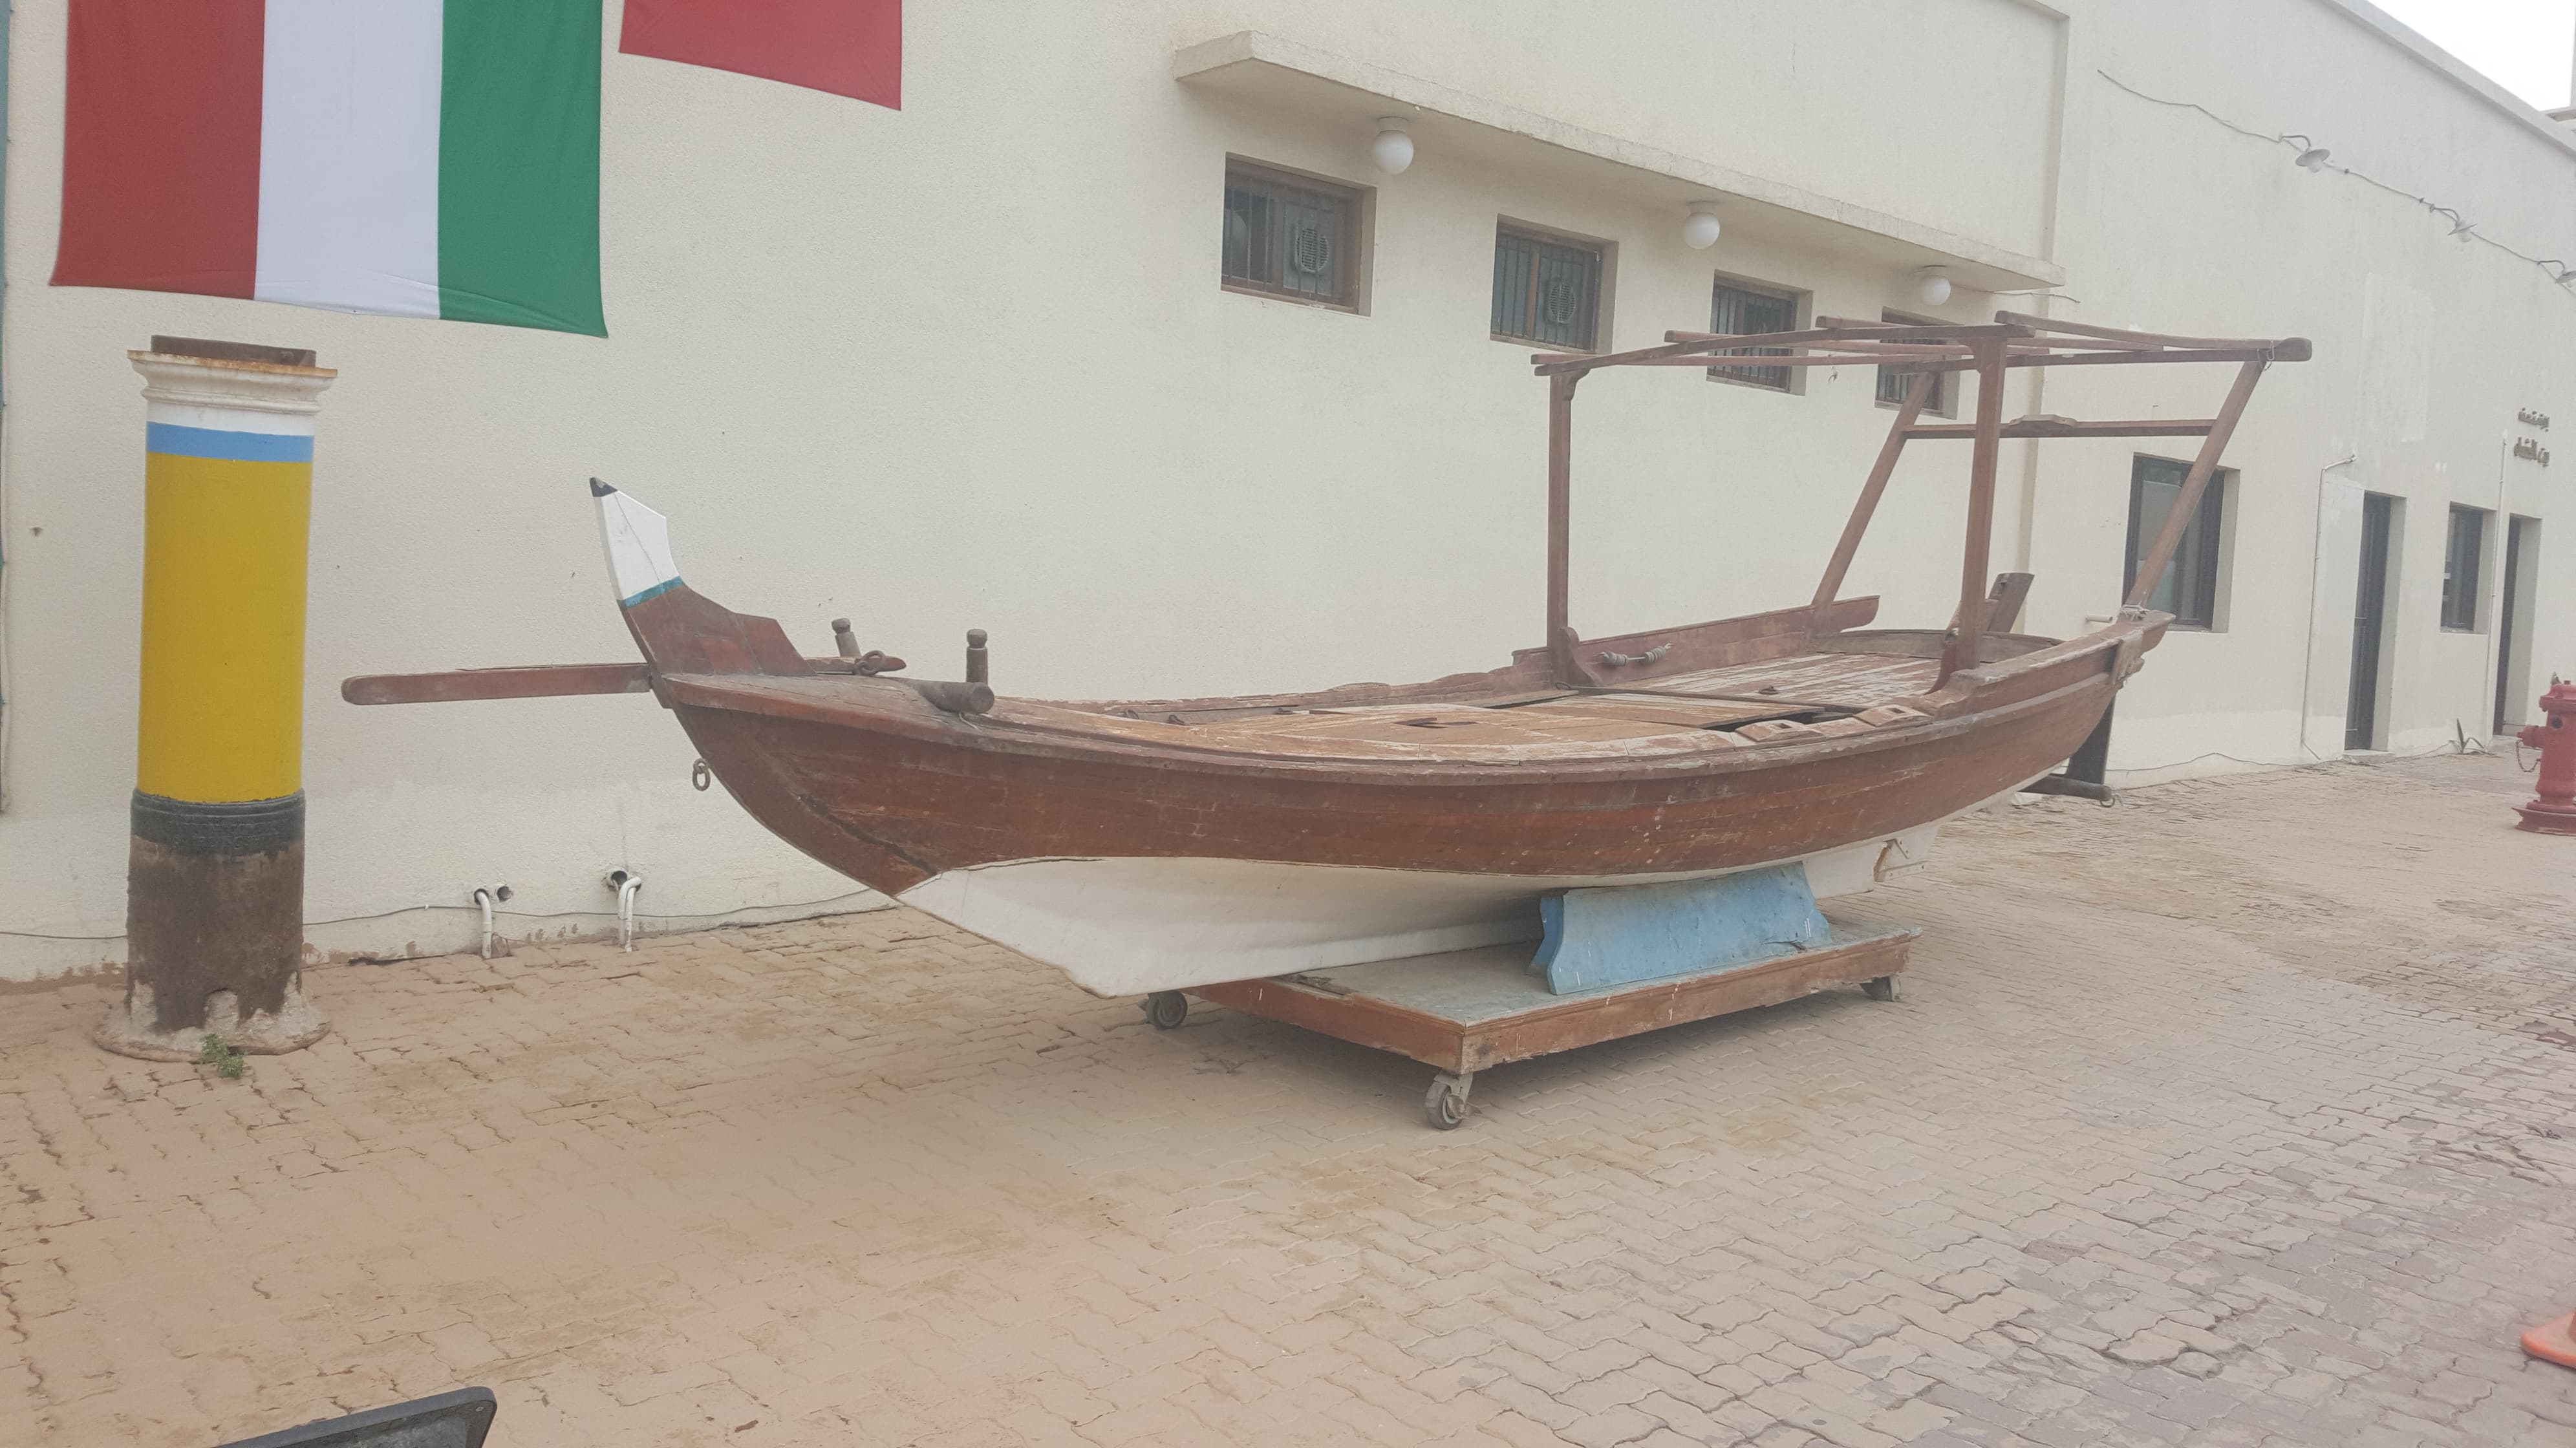 Kuwait traditional boat (Dhow)